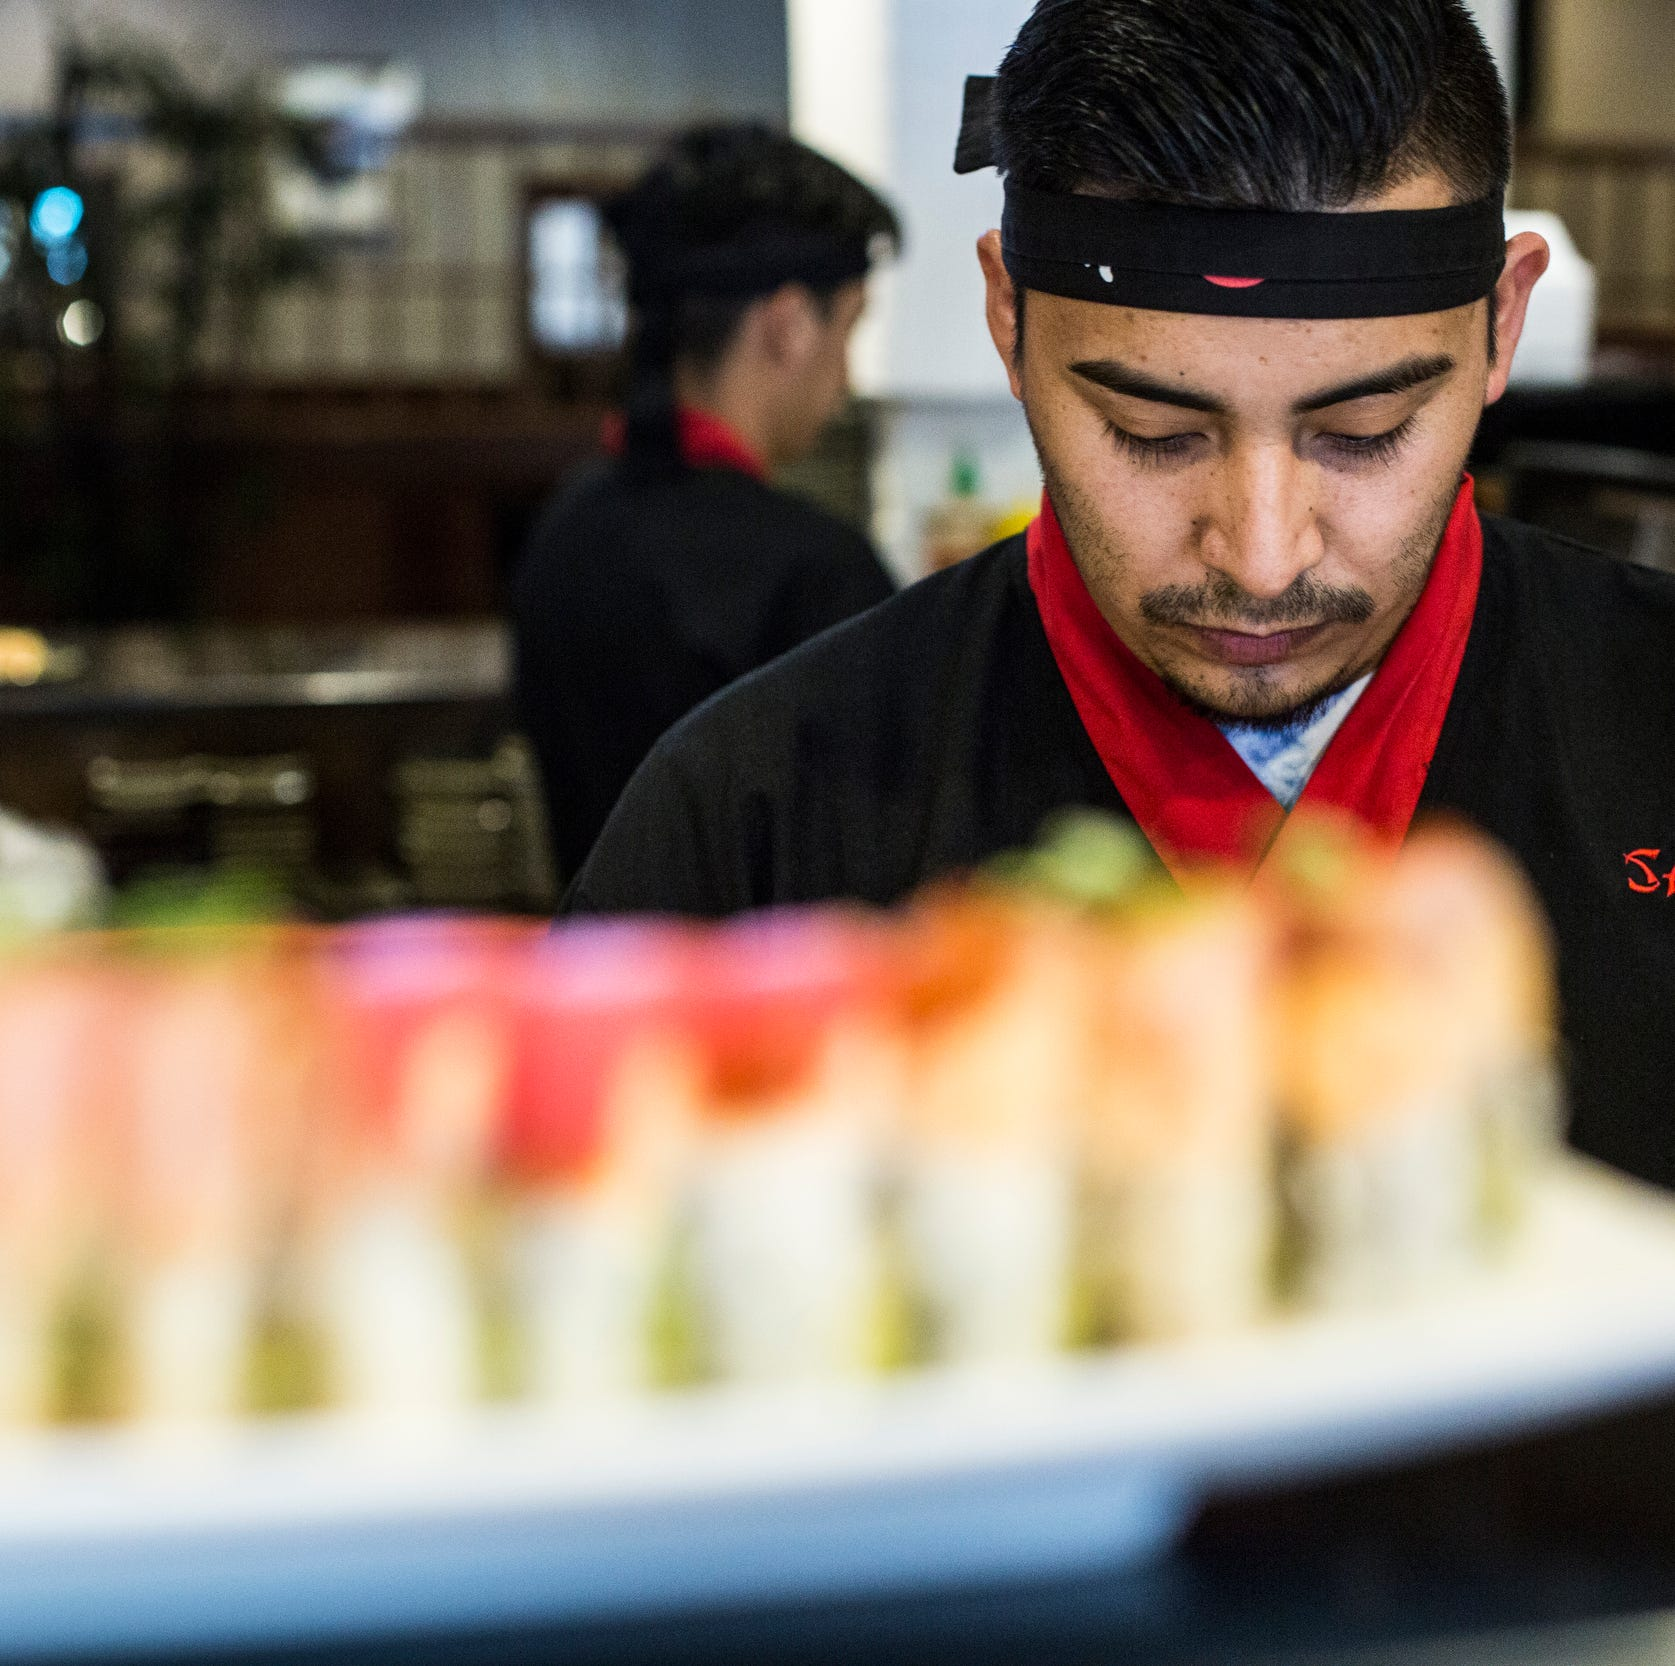 Sakura takes sushi to an art form with creative specialty house rolls; here's how they do it